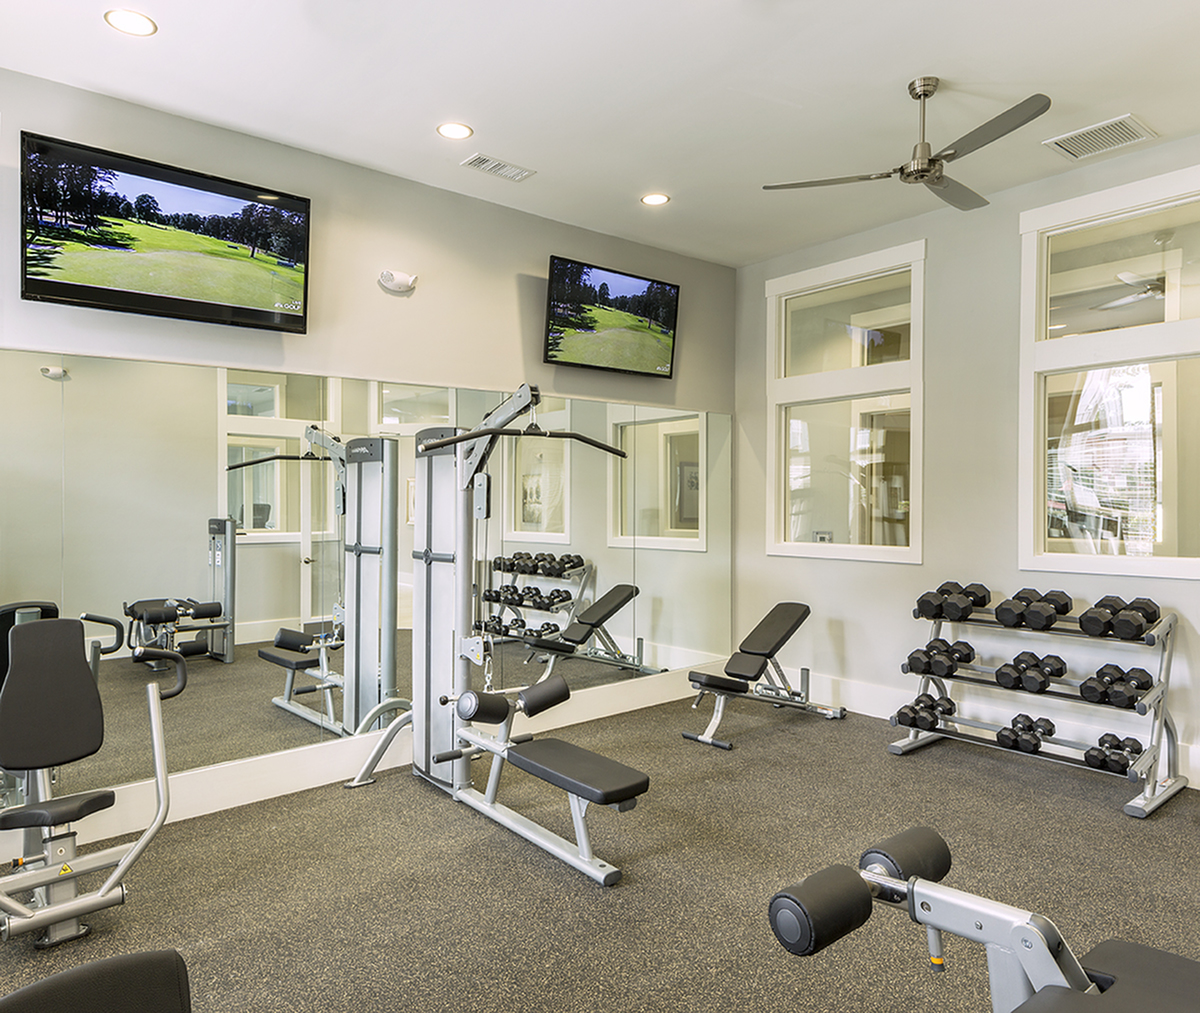 Image of Yoga/Independent Fitness Room for Legacy Village